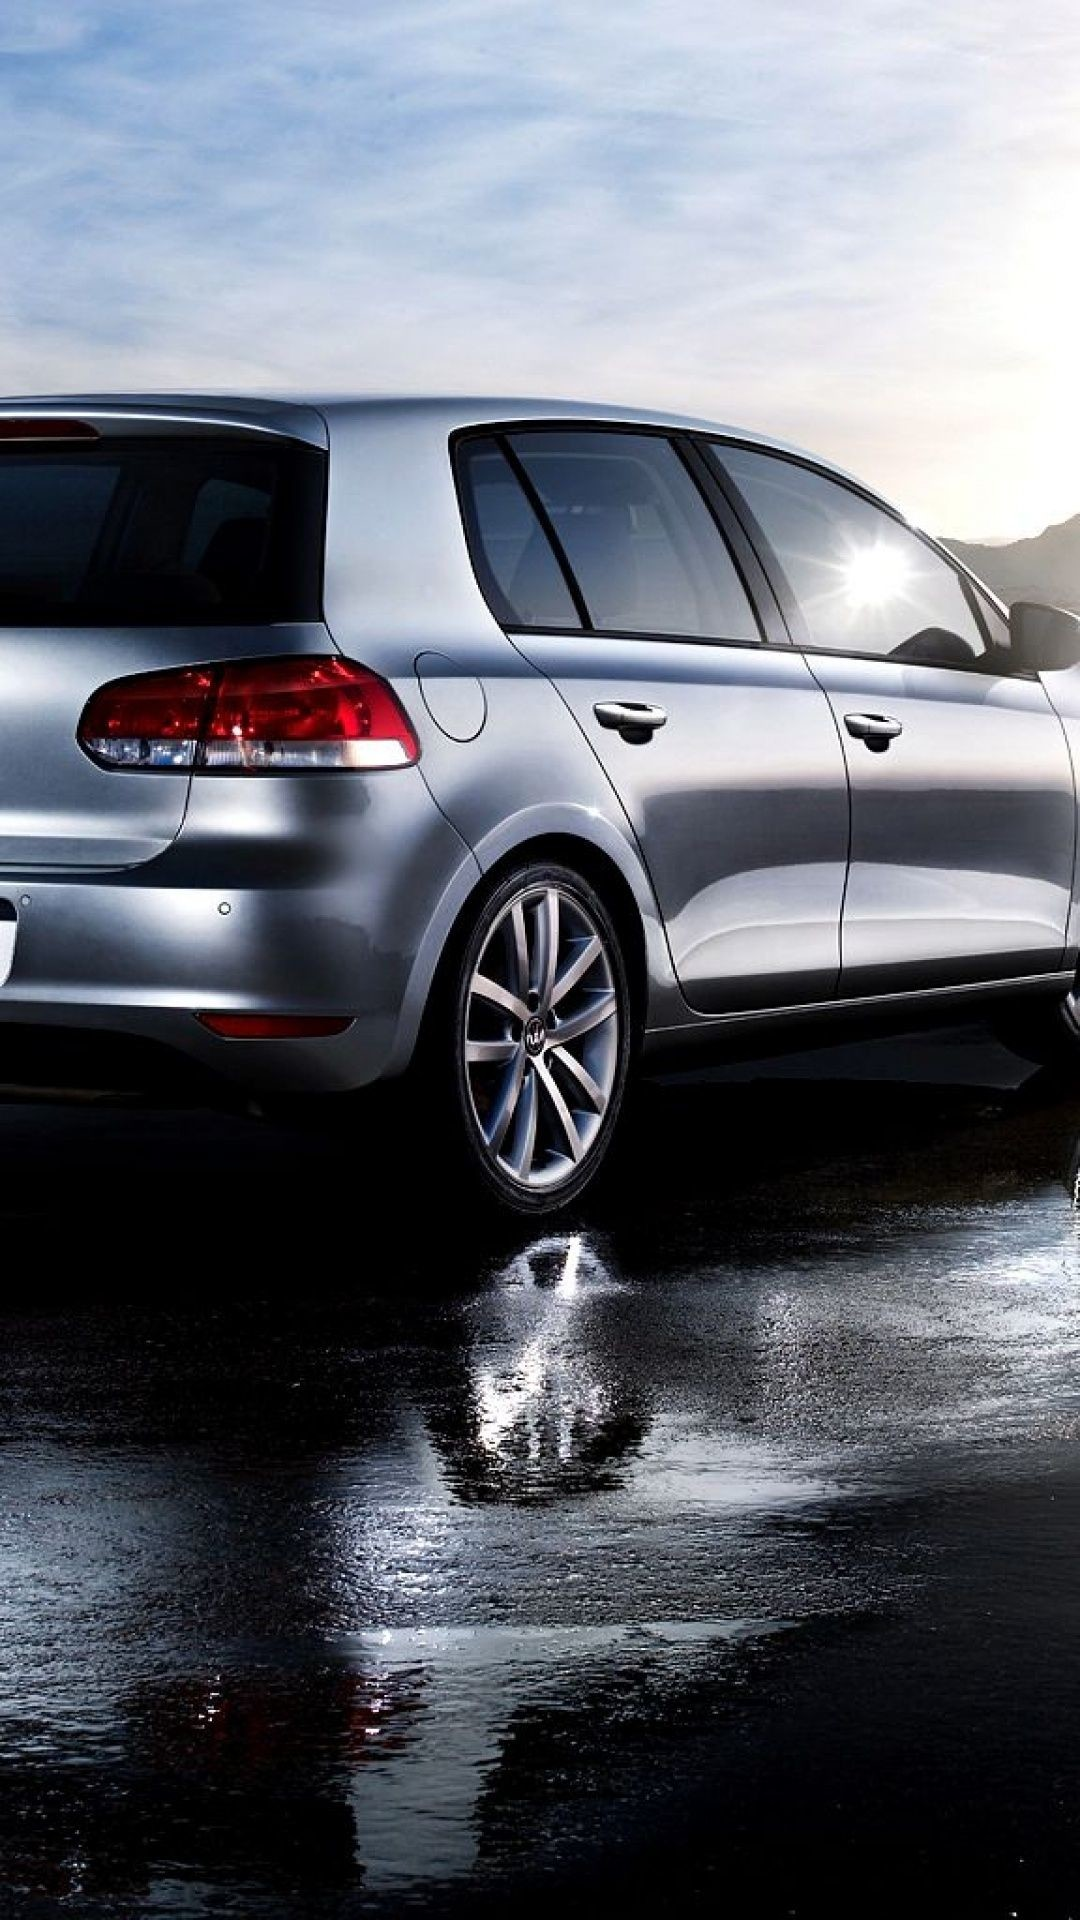 Res: 1080x1920, Vw Golf Iphone 5 Wallpaper - Download Best Vw Golf Iphone 5 Wallpaperfor  iPhone Wallpaper inHigh